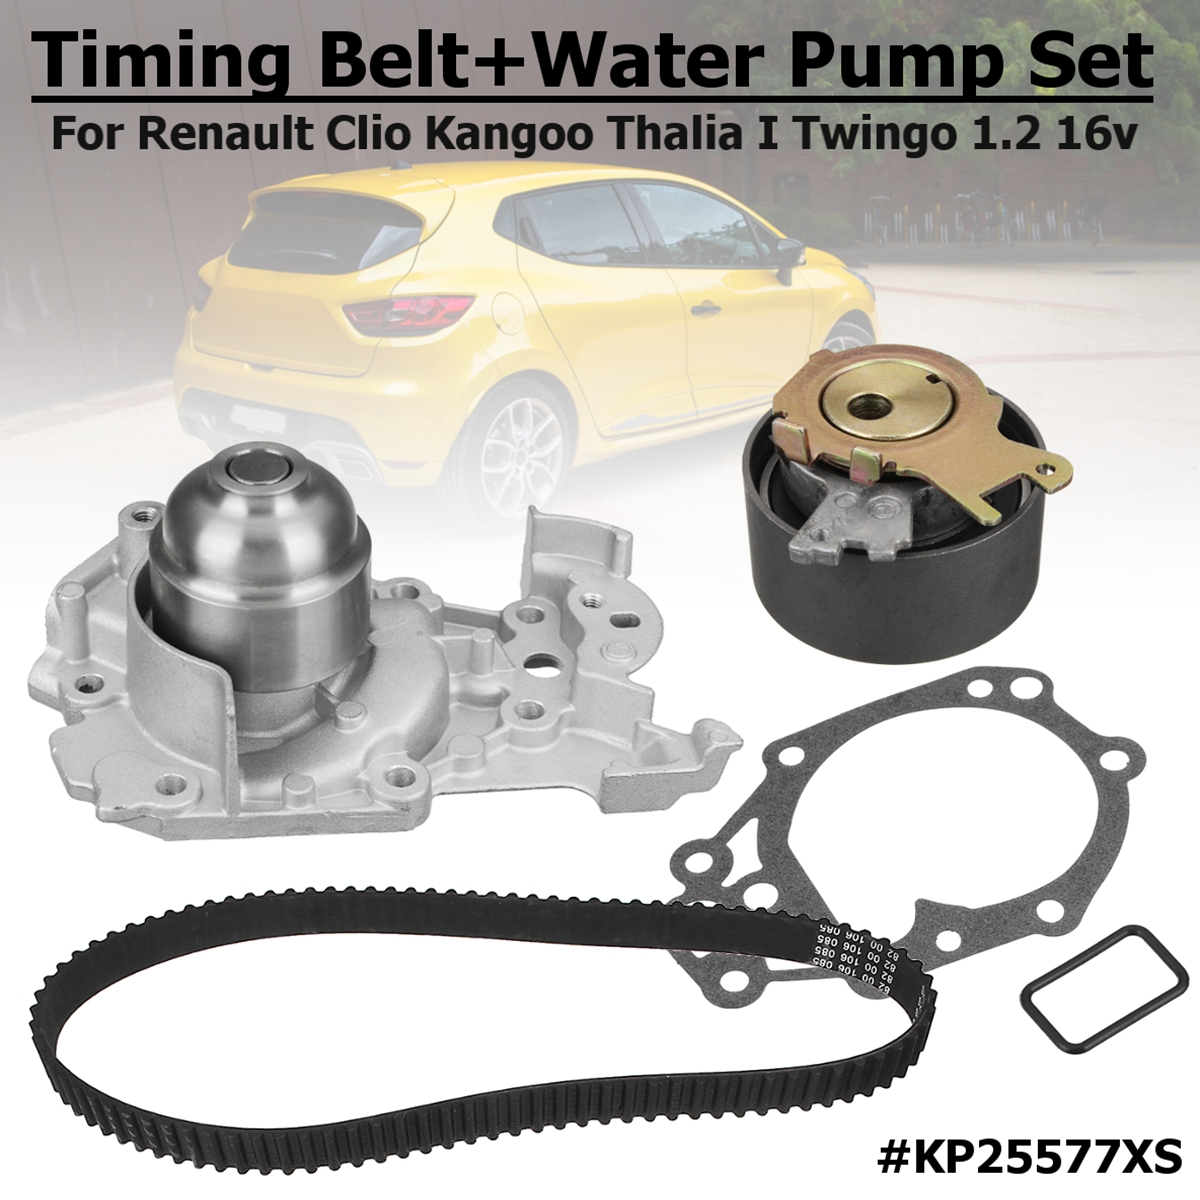 New 1.2 16v Gates Timing Belt+Water Pump #KP25577XS For Renault Clio Clio Grandtour Kangoo Modus/Grand Modus Thalia Thalia I 7700431773 7701472508 trunk lock with key switch for renault logan clio sedan for for renault clio thalia 1998 2010